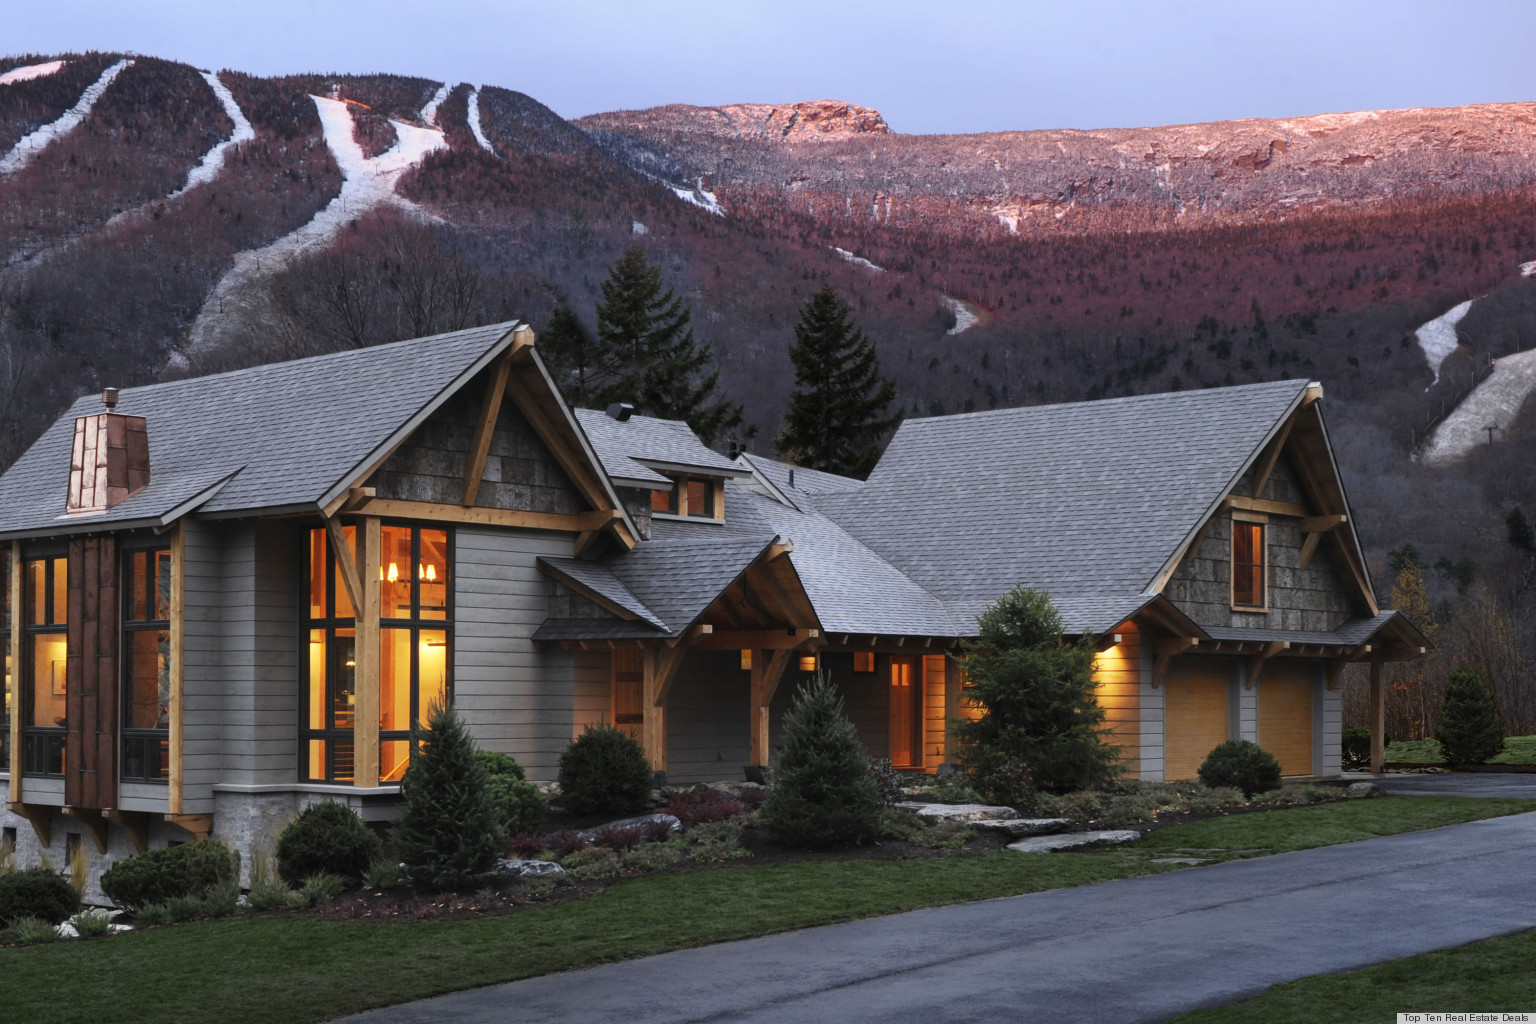 Design Hgtv Dream Home 2013 hgtv dream home 2011 in stowe vermont on sale for 2995000 photos video huffpost